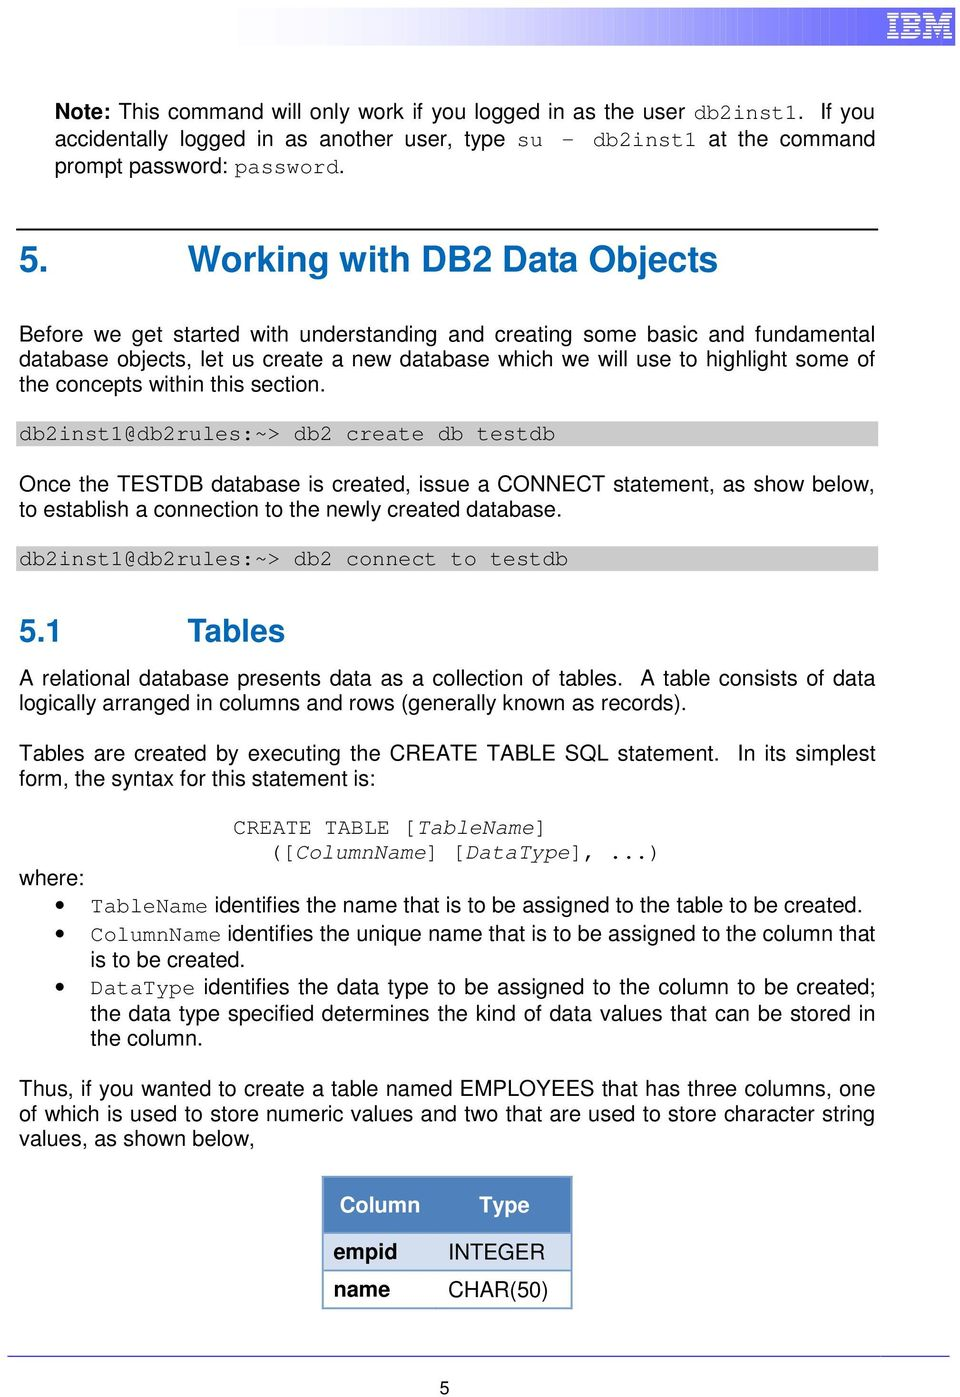 IBM DB Introduction to SQL and database objects Hands-on Lab